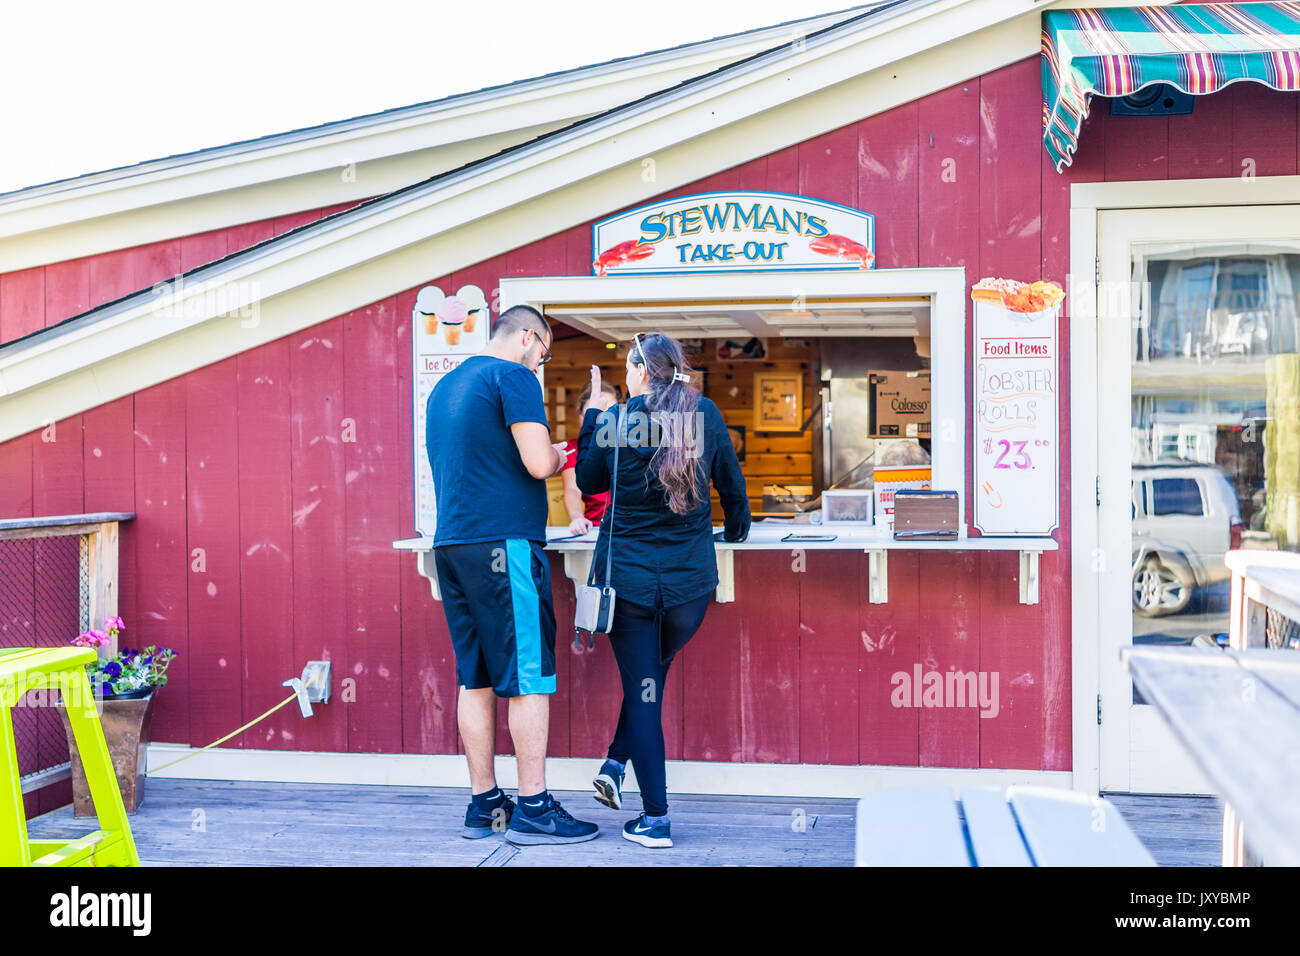 Stewmans stock photos stewmans stock images alamy for Food bar harbor